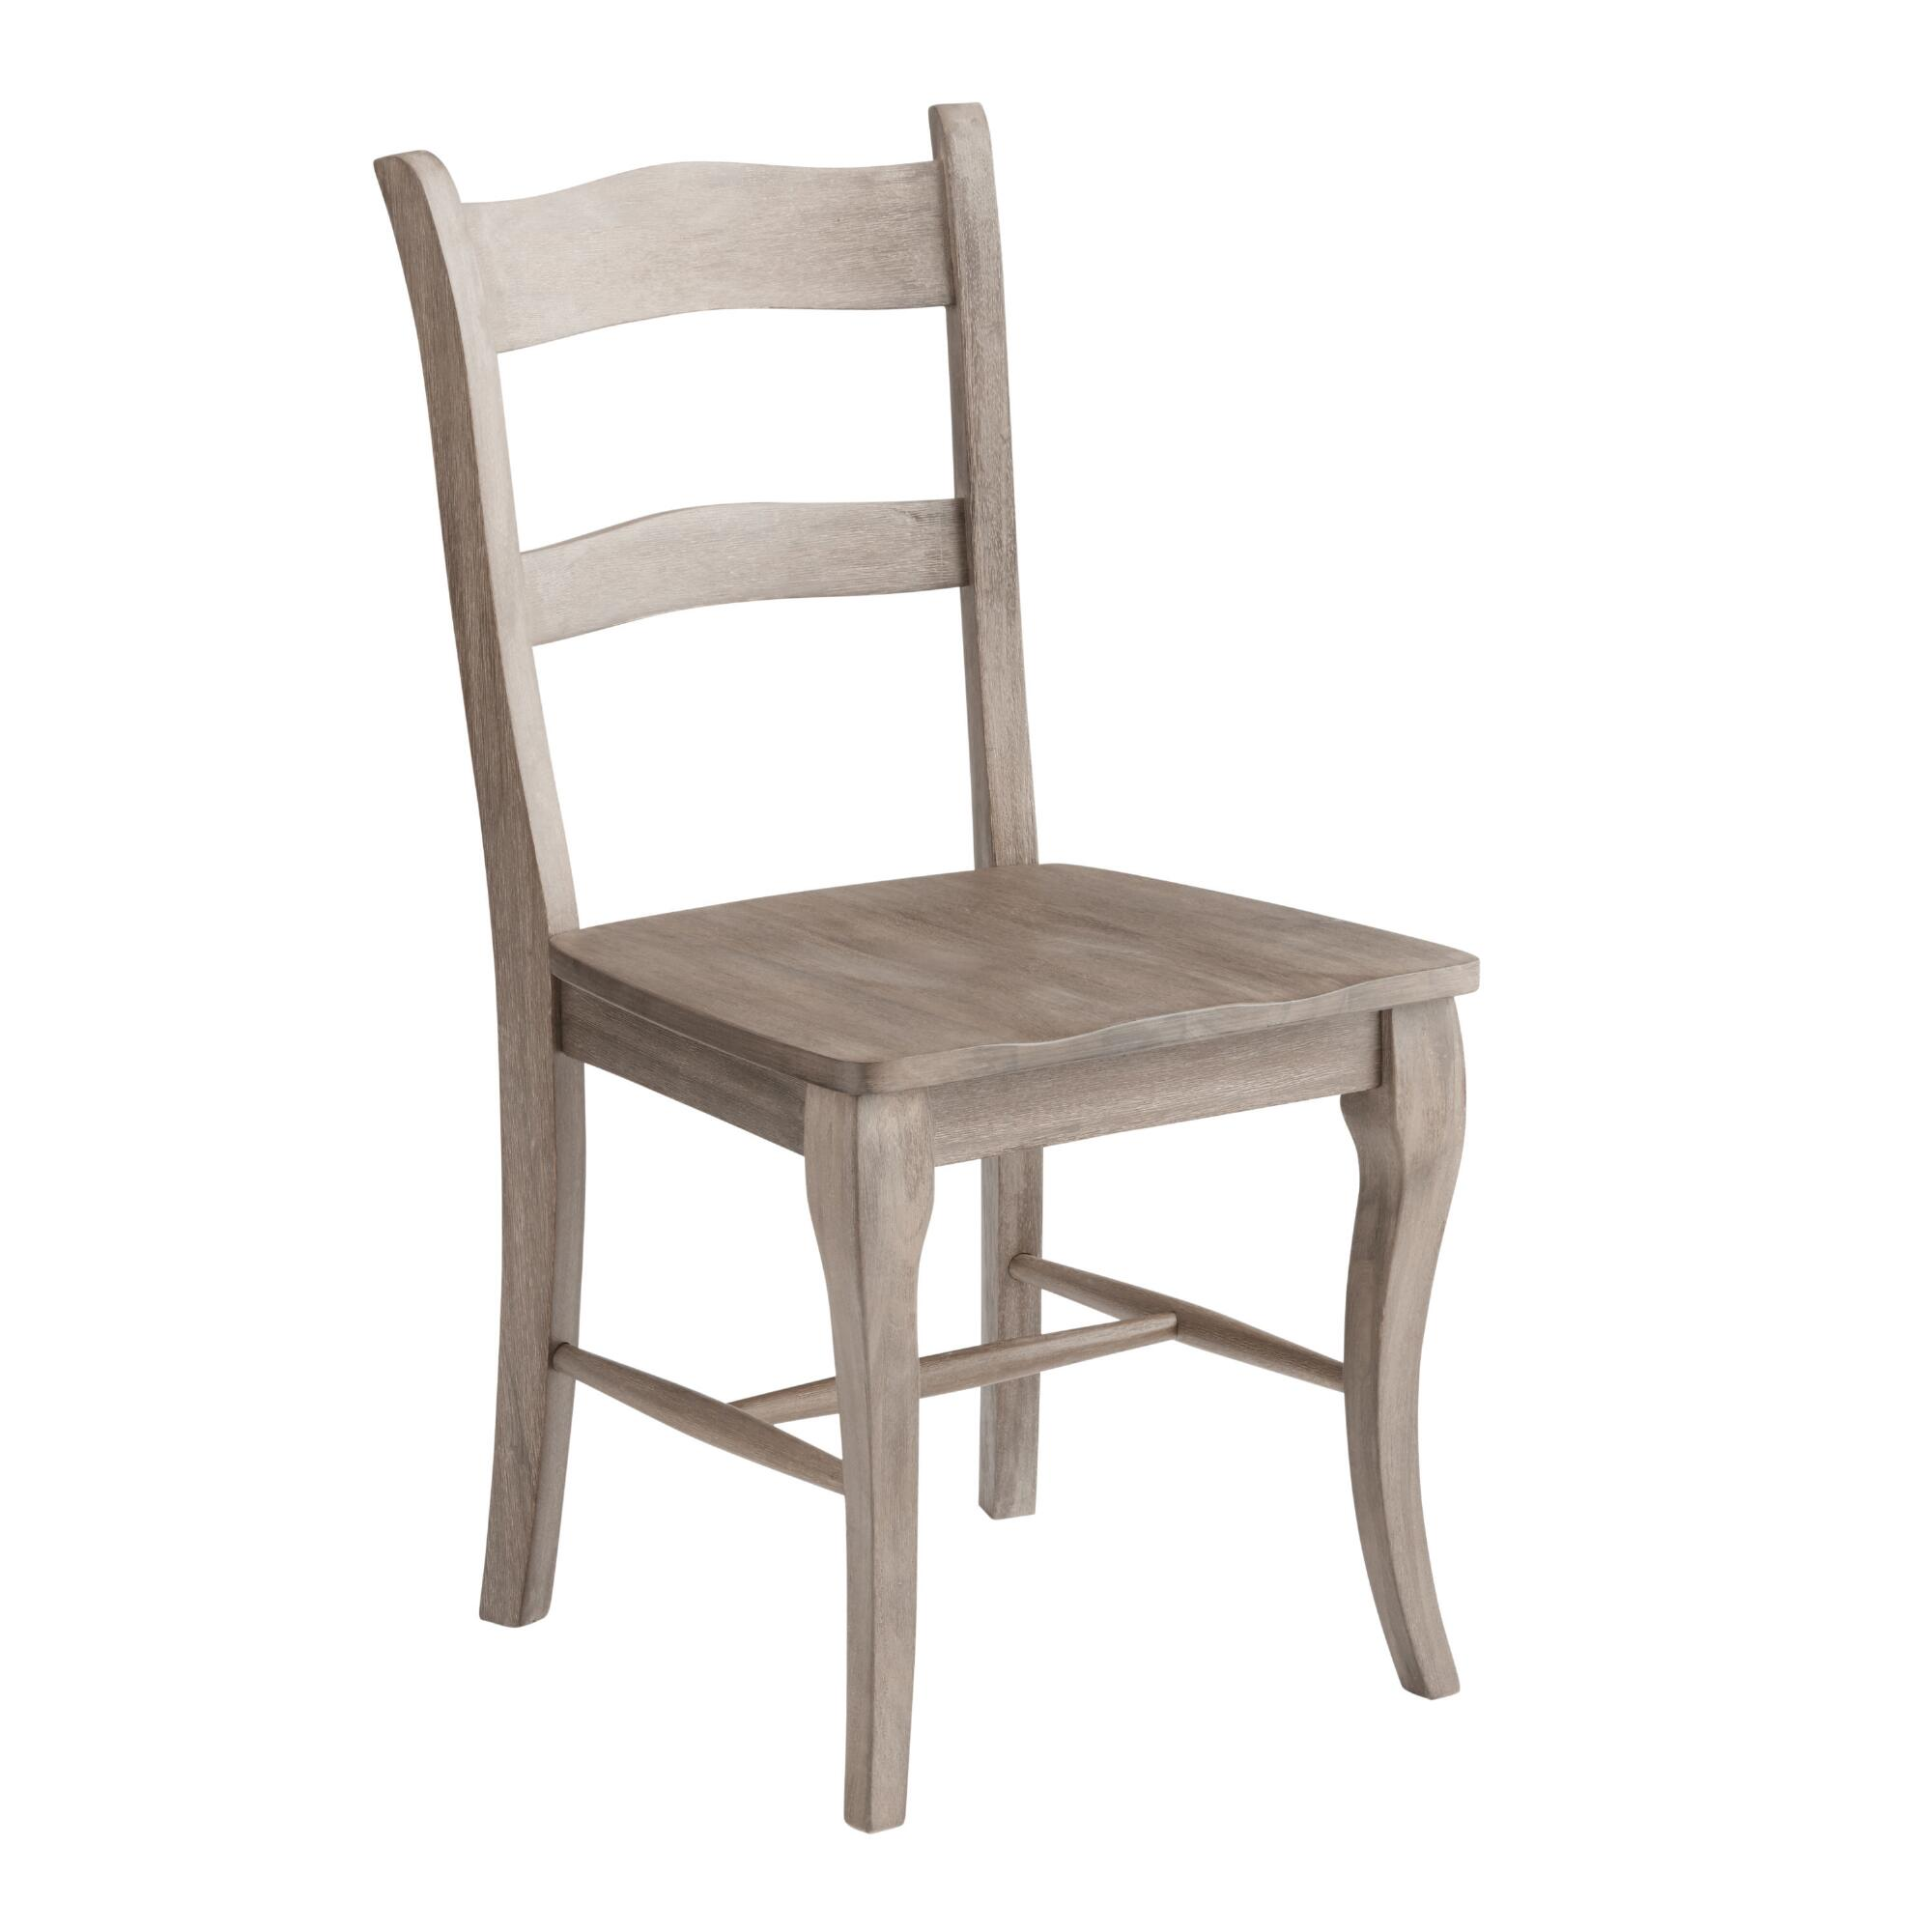 Weathered Gray Wood Jozy Dining Chairs Set of 2. Acacia Wood Weathered Furniture   World Market